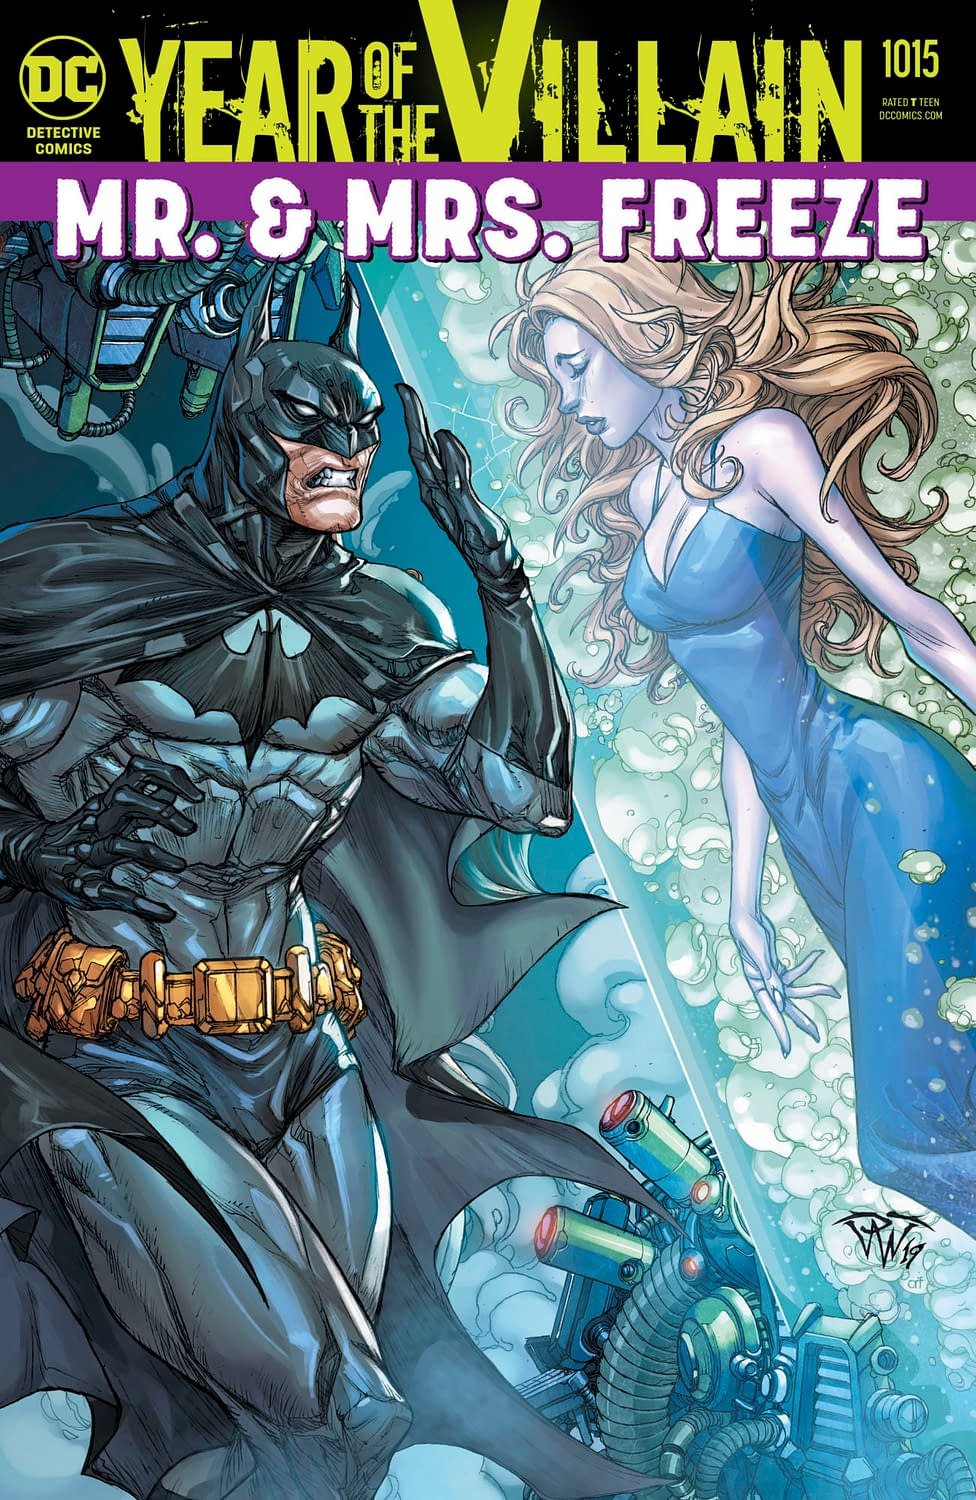 Mr. Freeze Learns to Be Careful What You Wish For in Detective Comics #1015 [Preview]